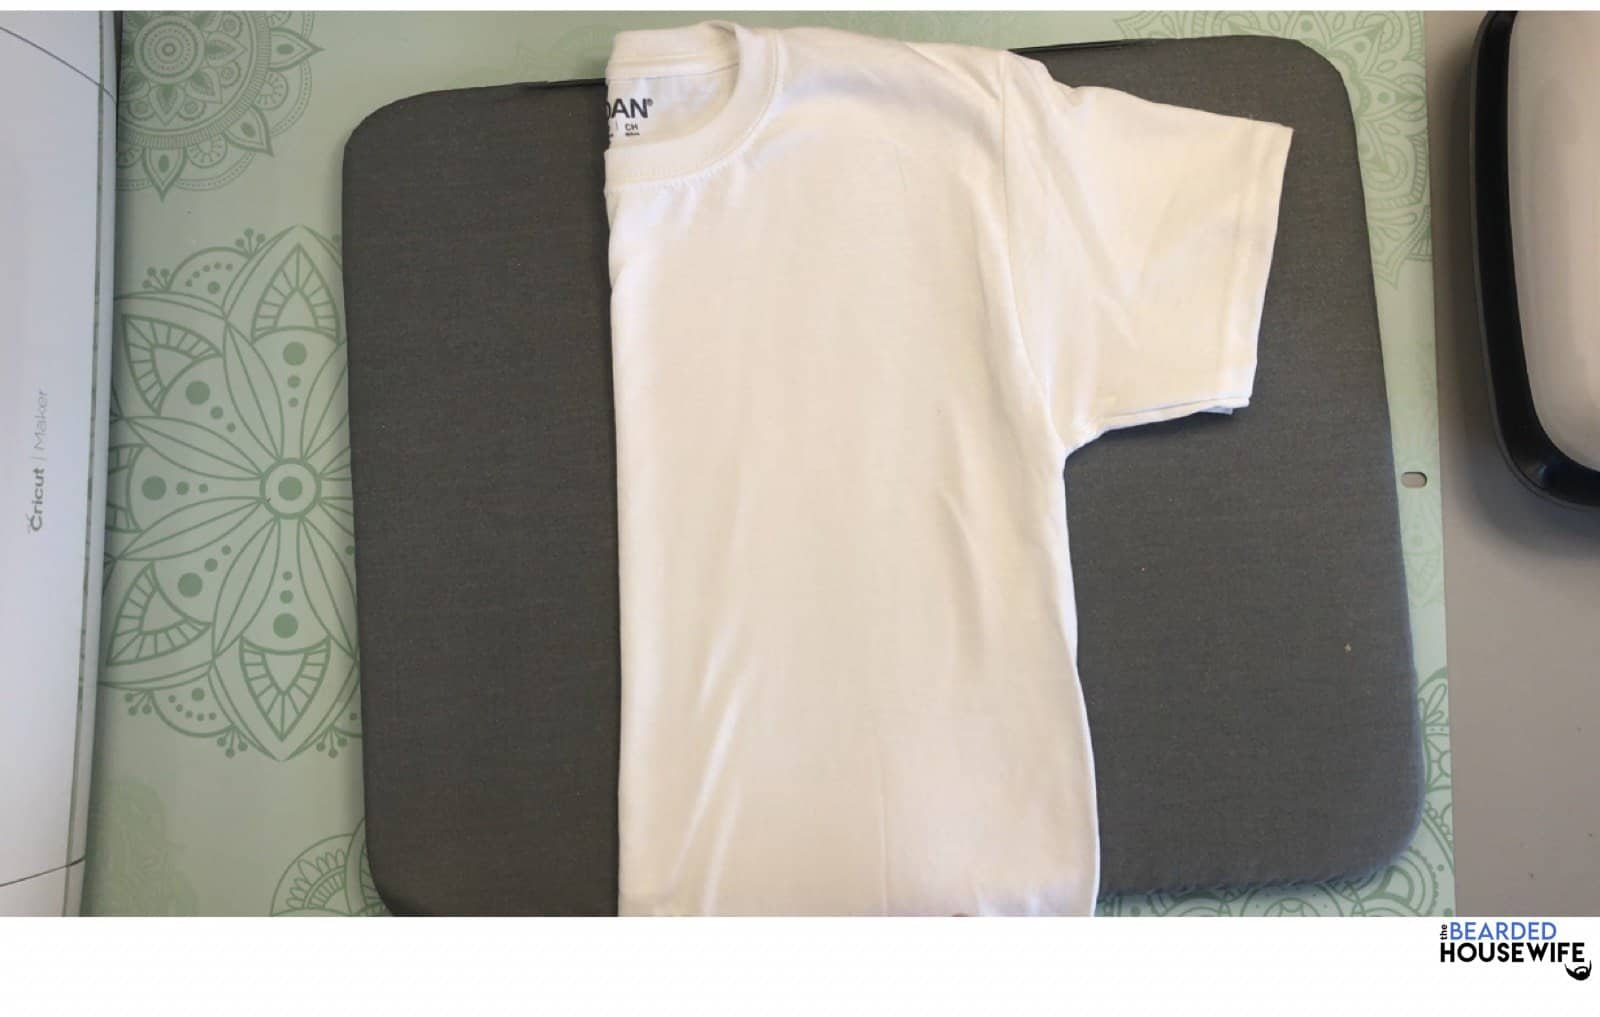 fold the shirt in half lengthwise